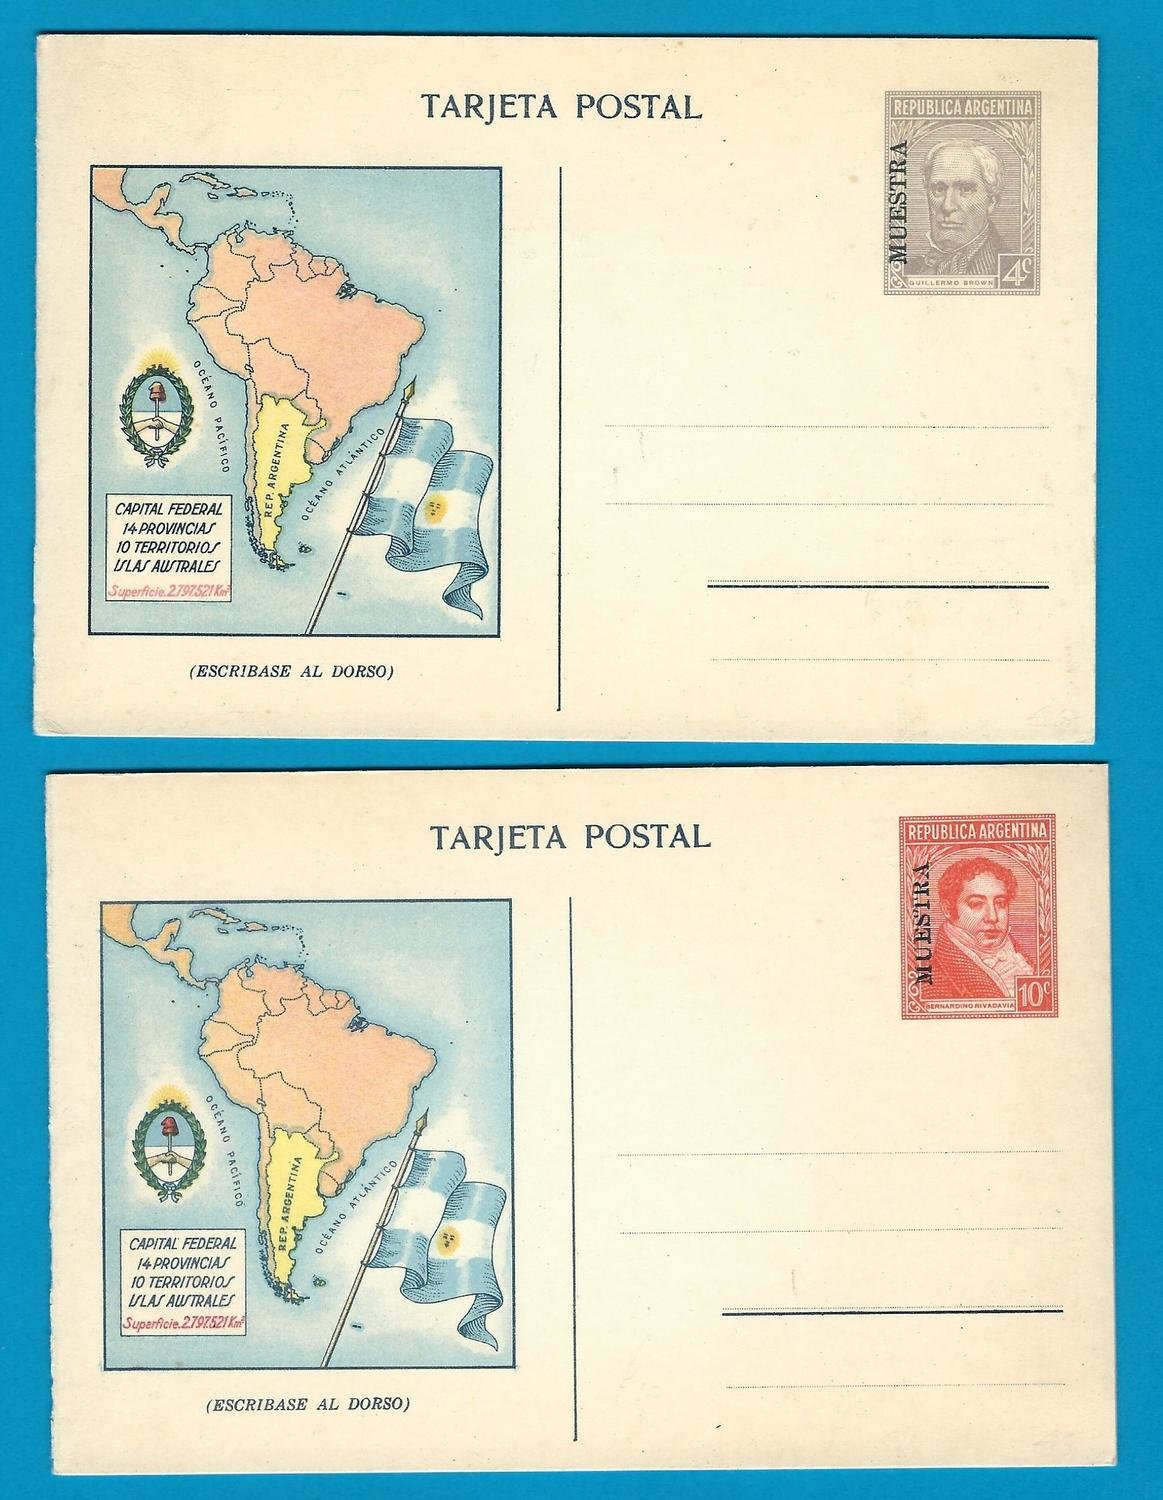 ARGENTINA 2 postal cards MUESTRA 1934 with map, flag